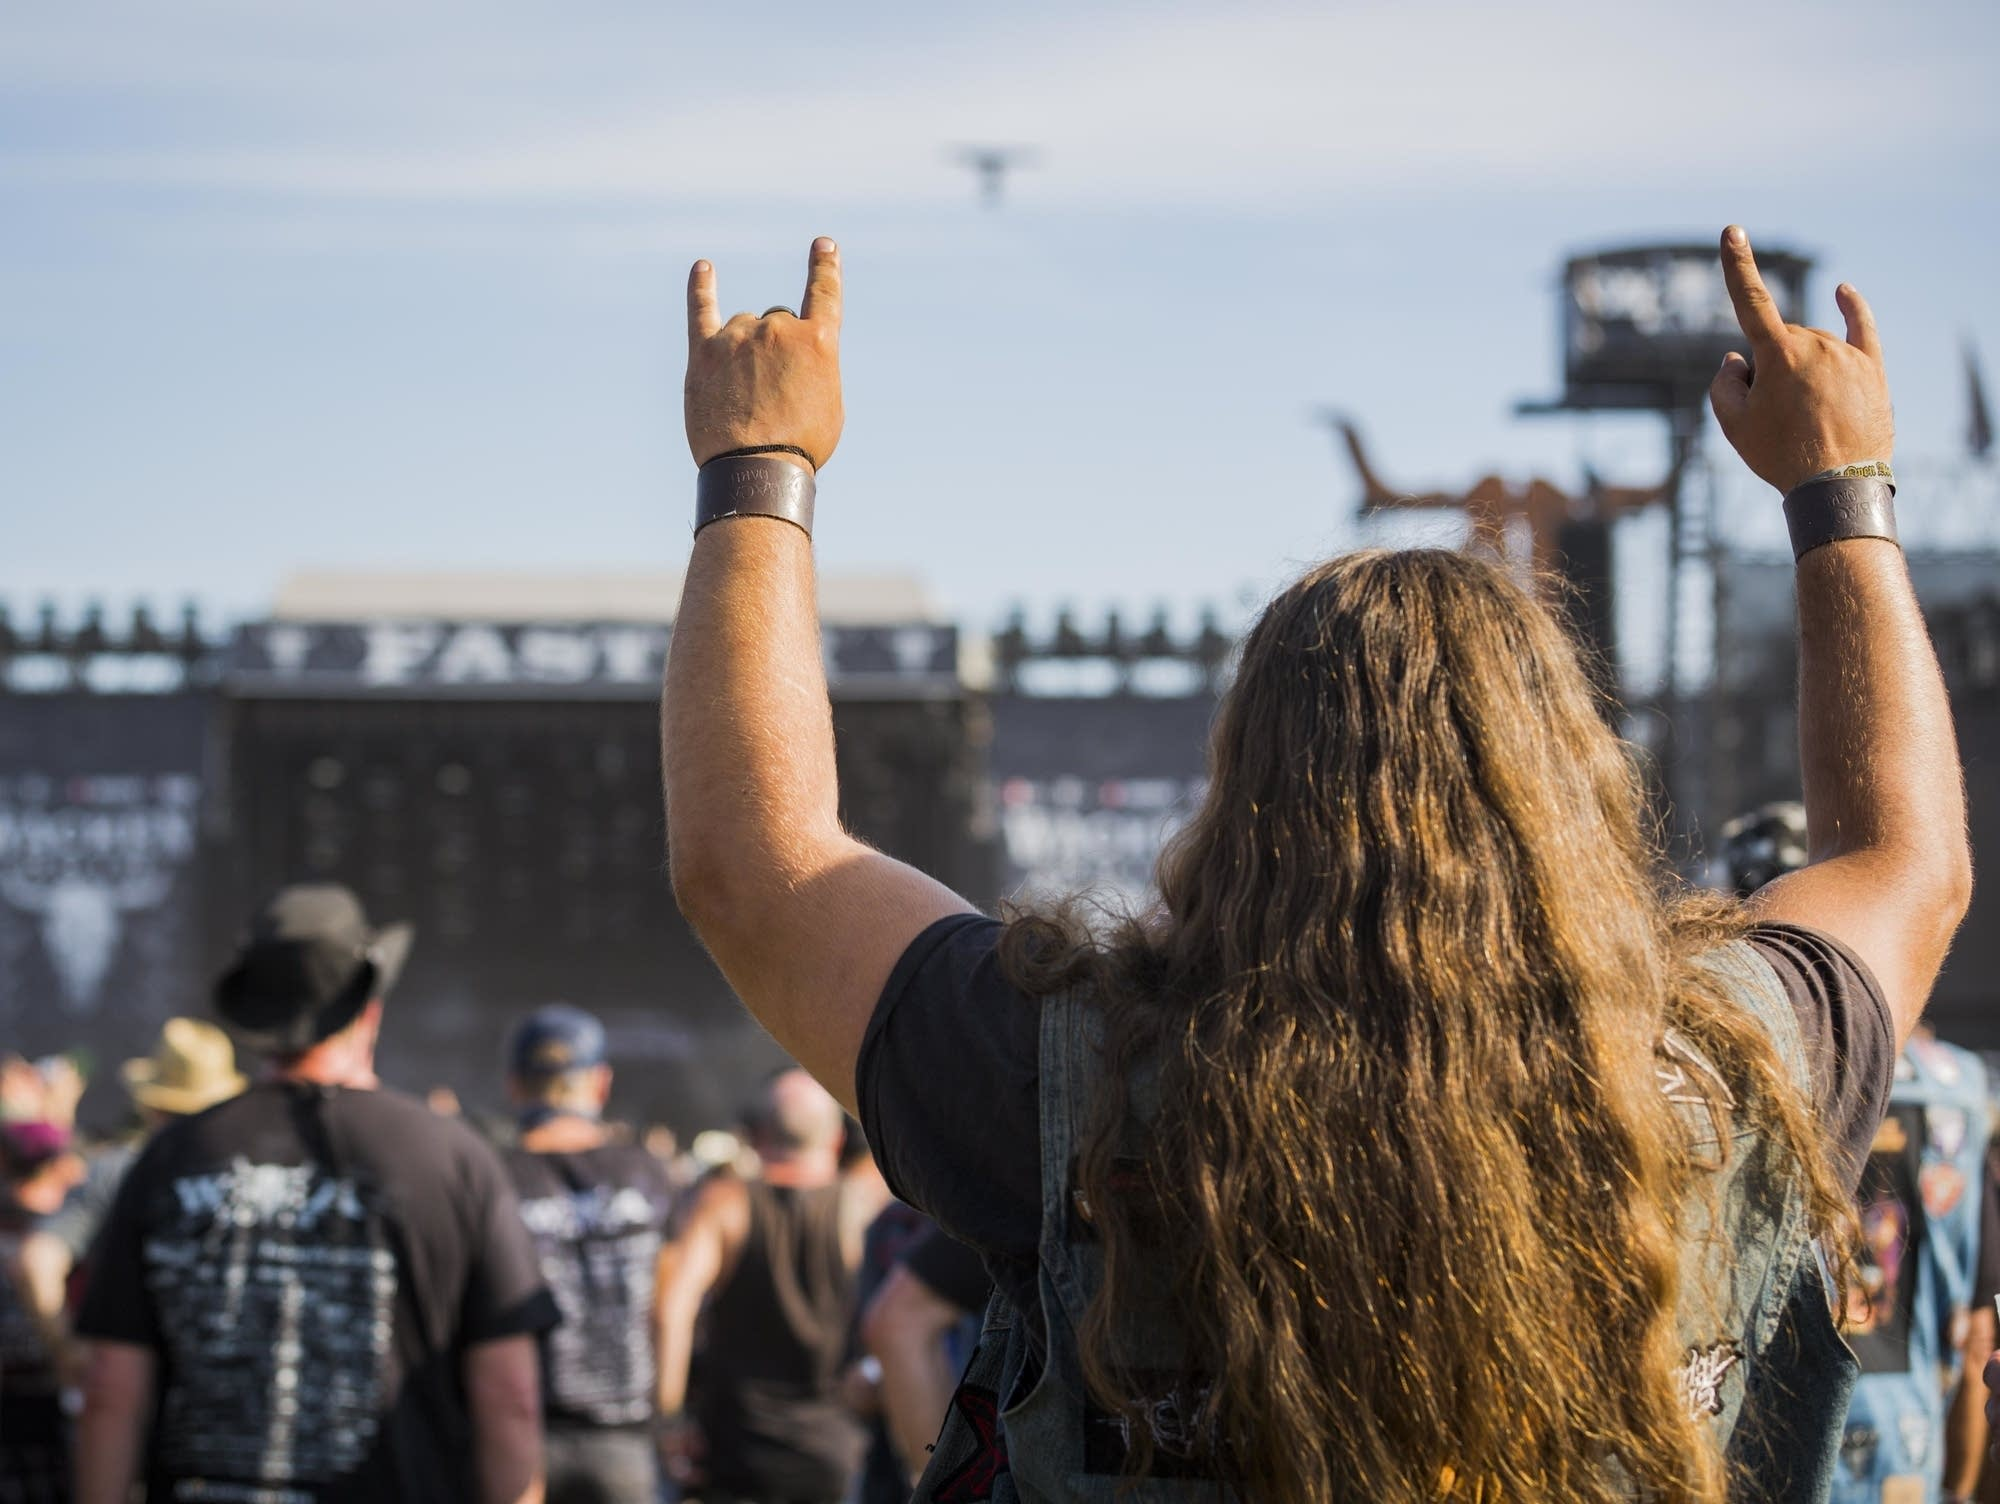 A fan at the Wacken Open Air festival, 2018.